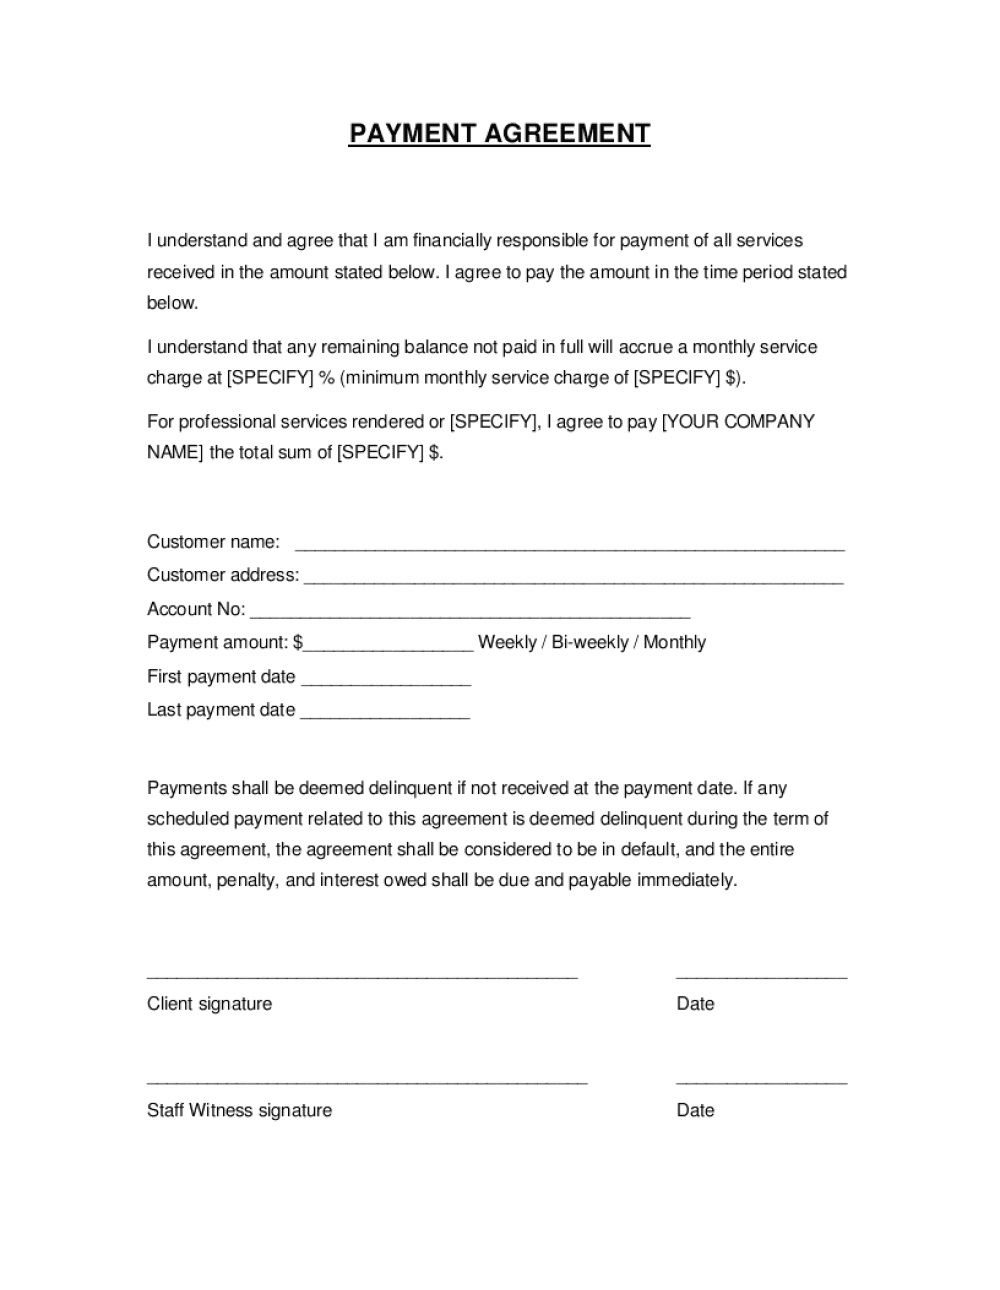 003 Wonderful Installment Payment Contract Template High Definition  Agreement Free Car WordFull